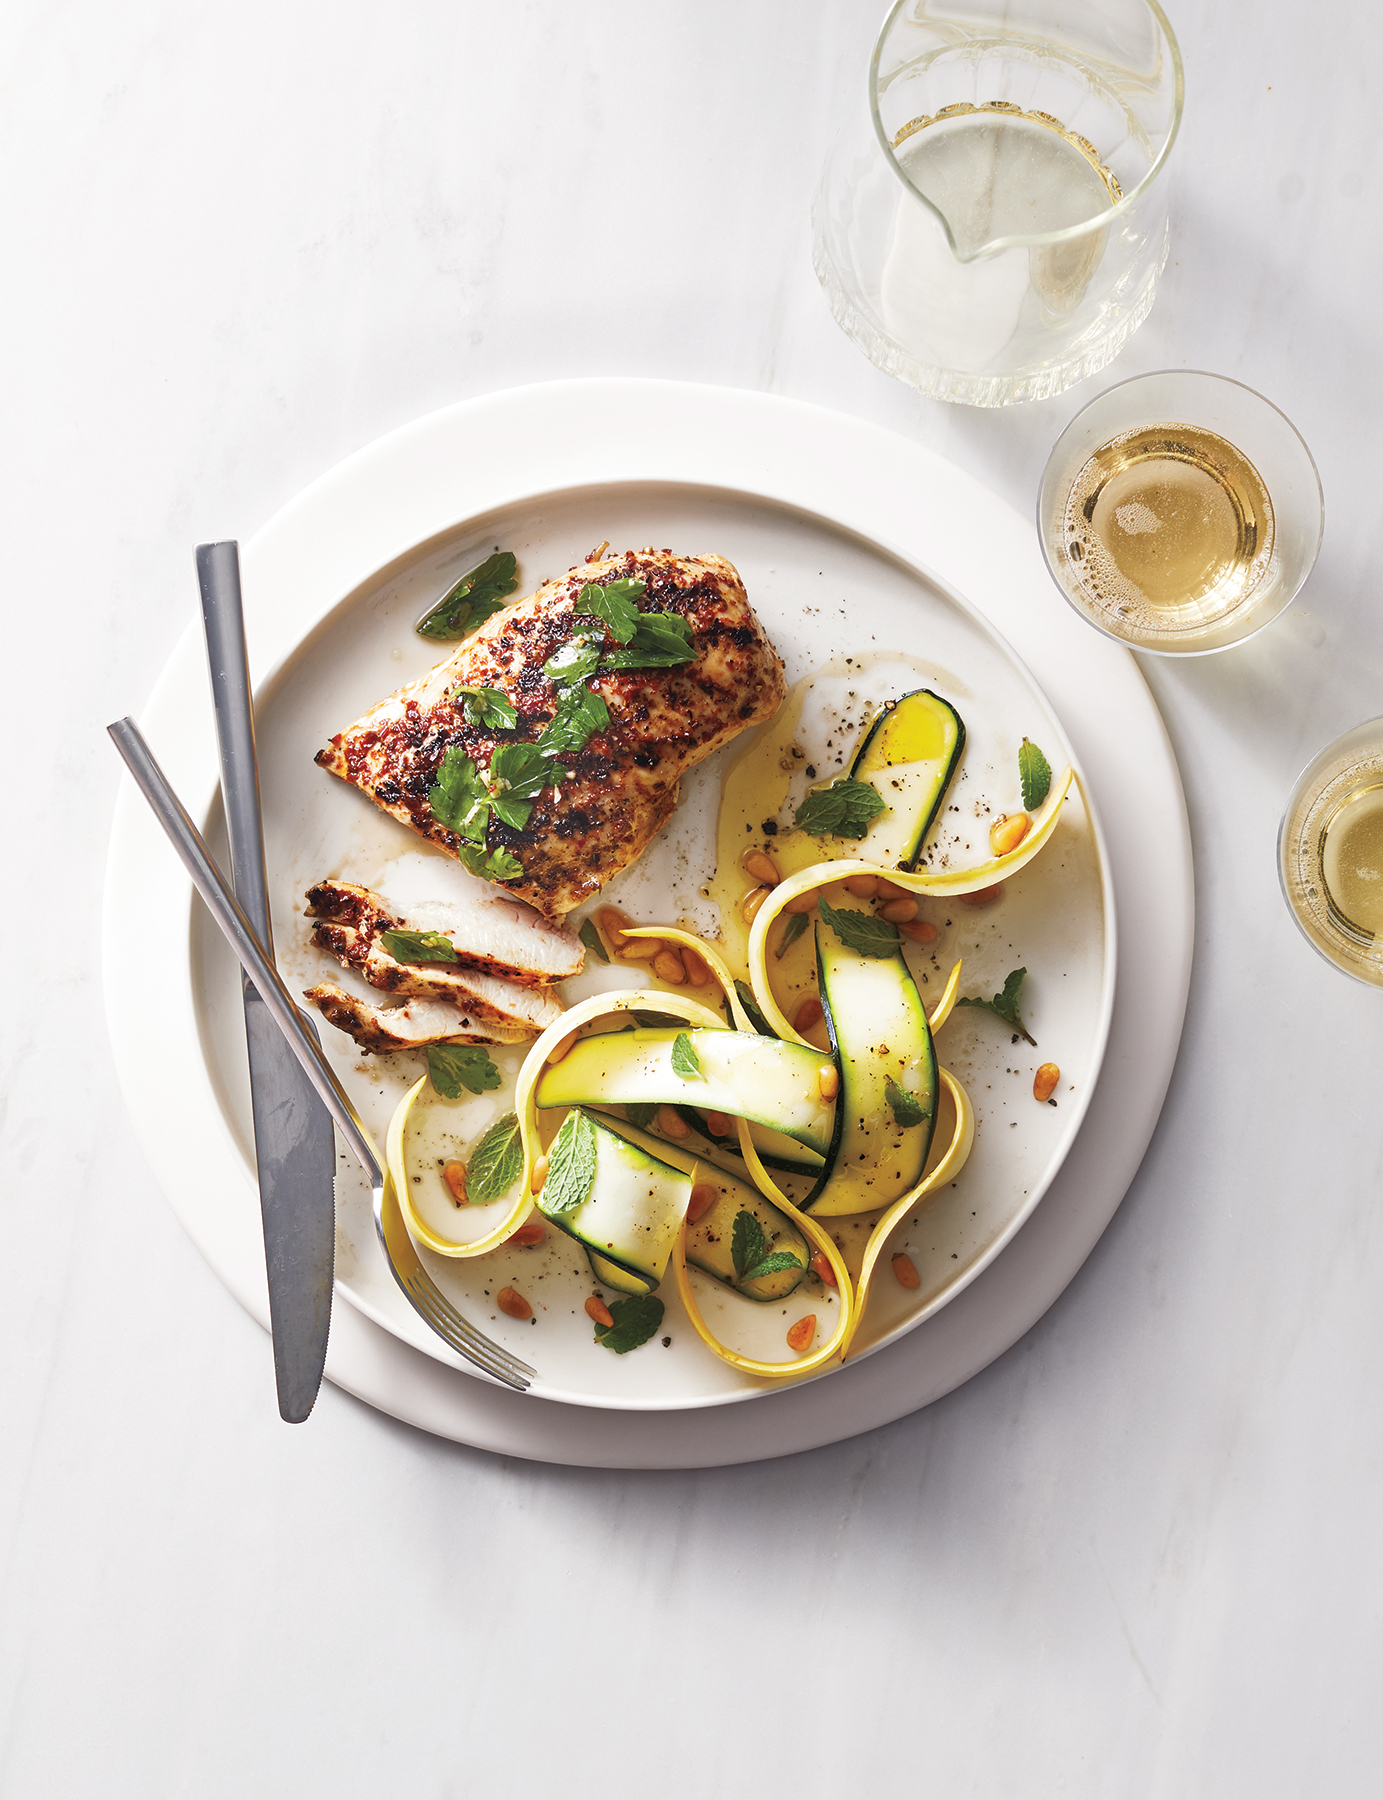 Spicy Grilled Chicken With Shaved Zucchini Salad